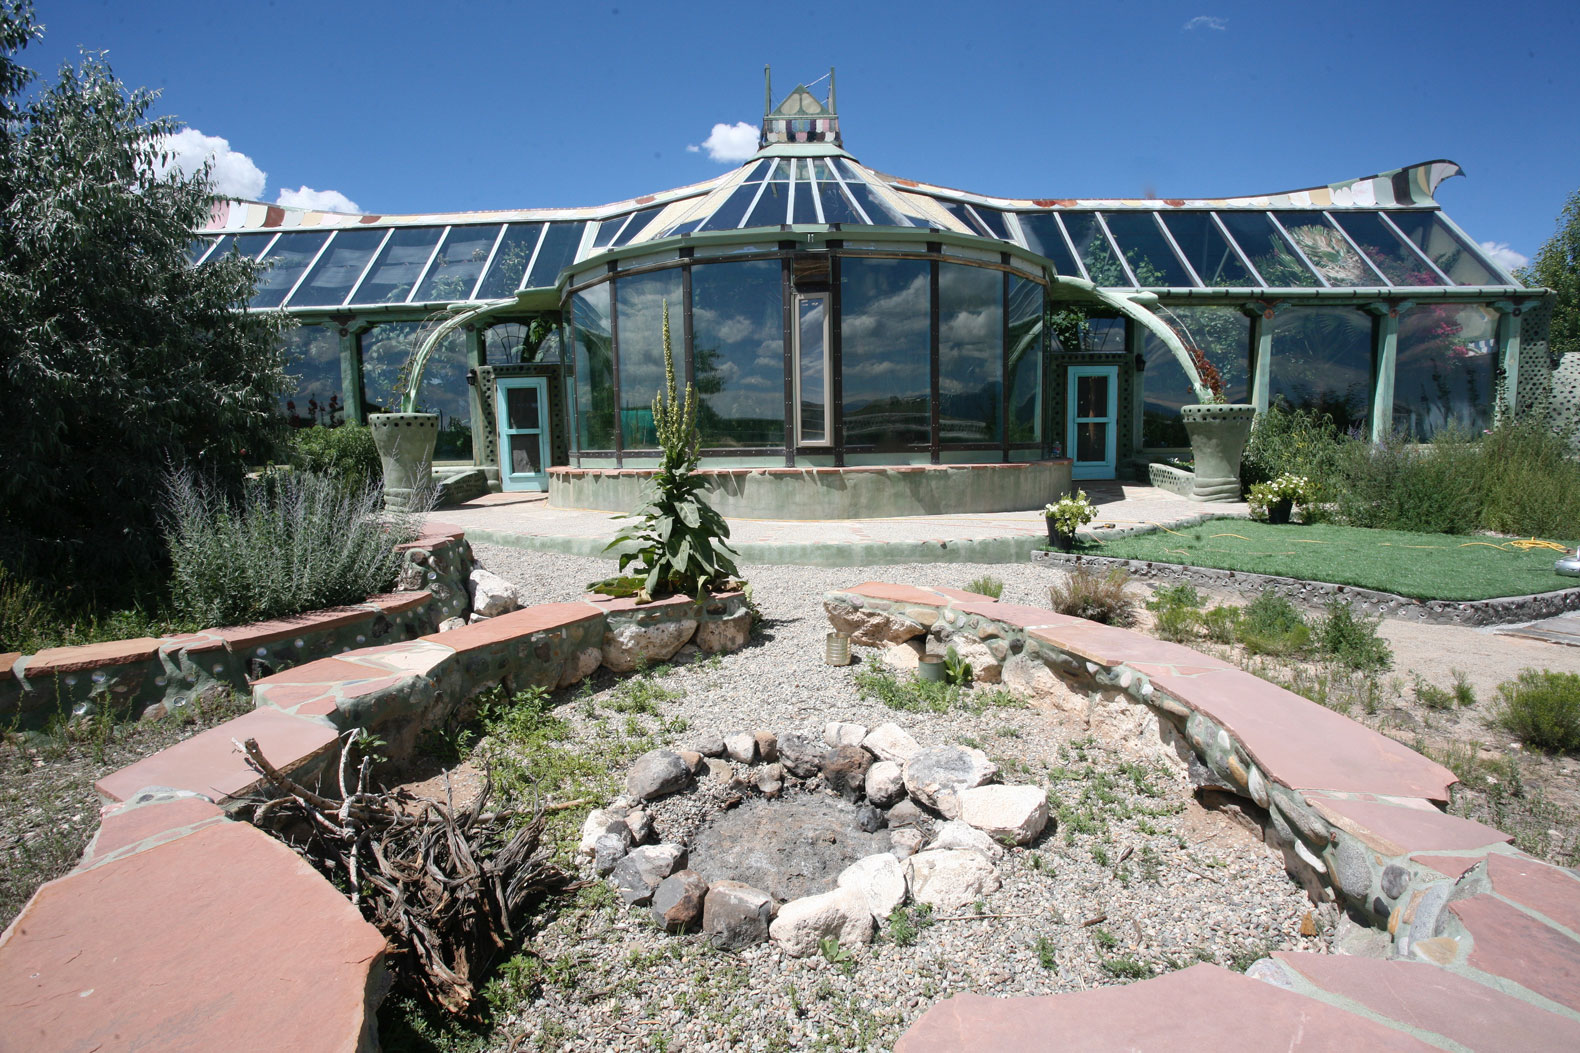 Phoenix Earthship features a food garden and jungle in off-grid fashion